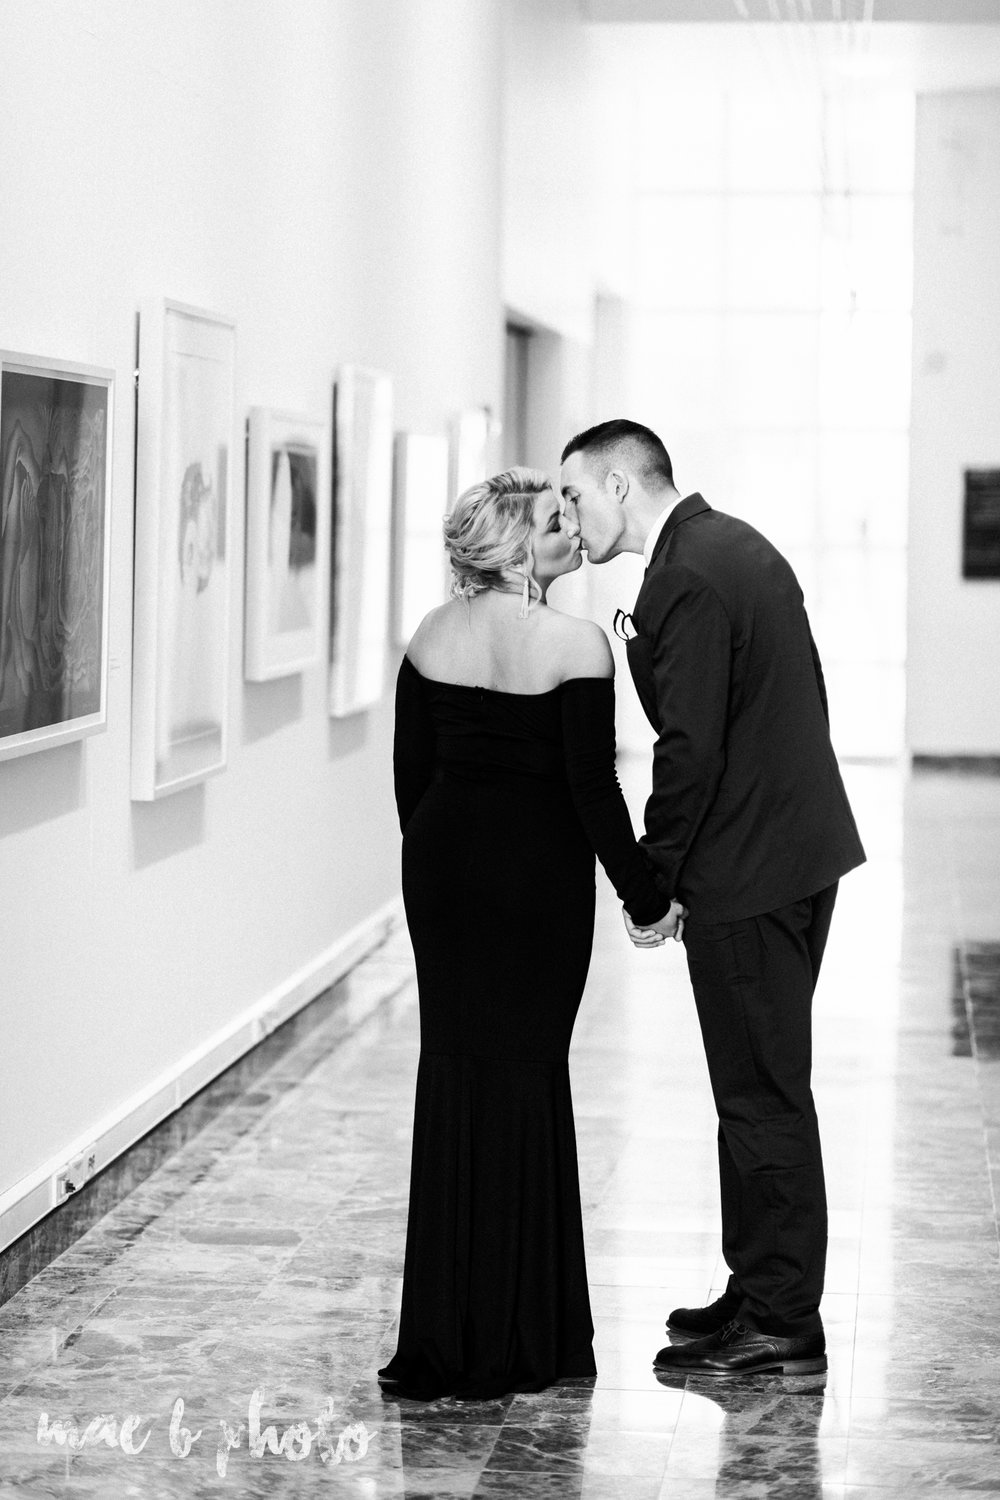 paige and cale's personalized winter glam engagement session at the butler institute of american art and downtown youngstown in youngstown ohio photographed by youngstown wedding photographer mae b photo-17.jpg